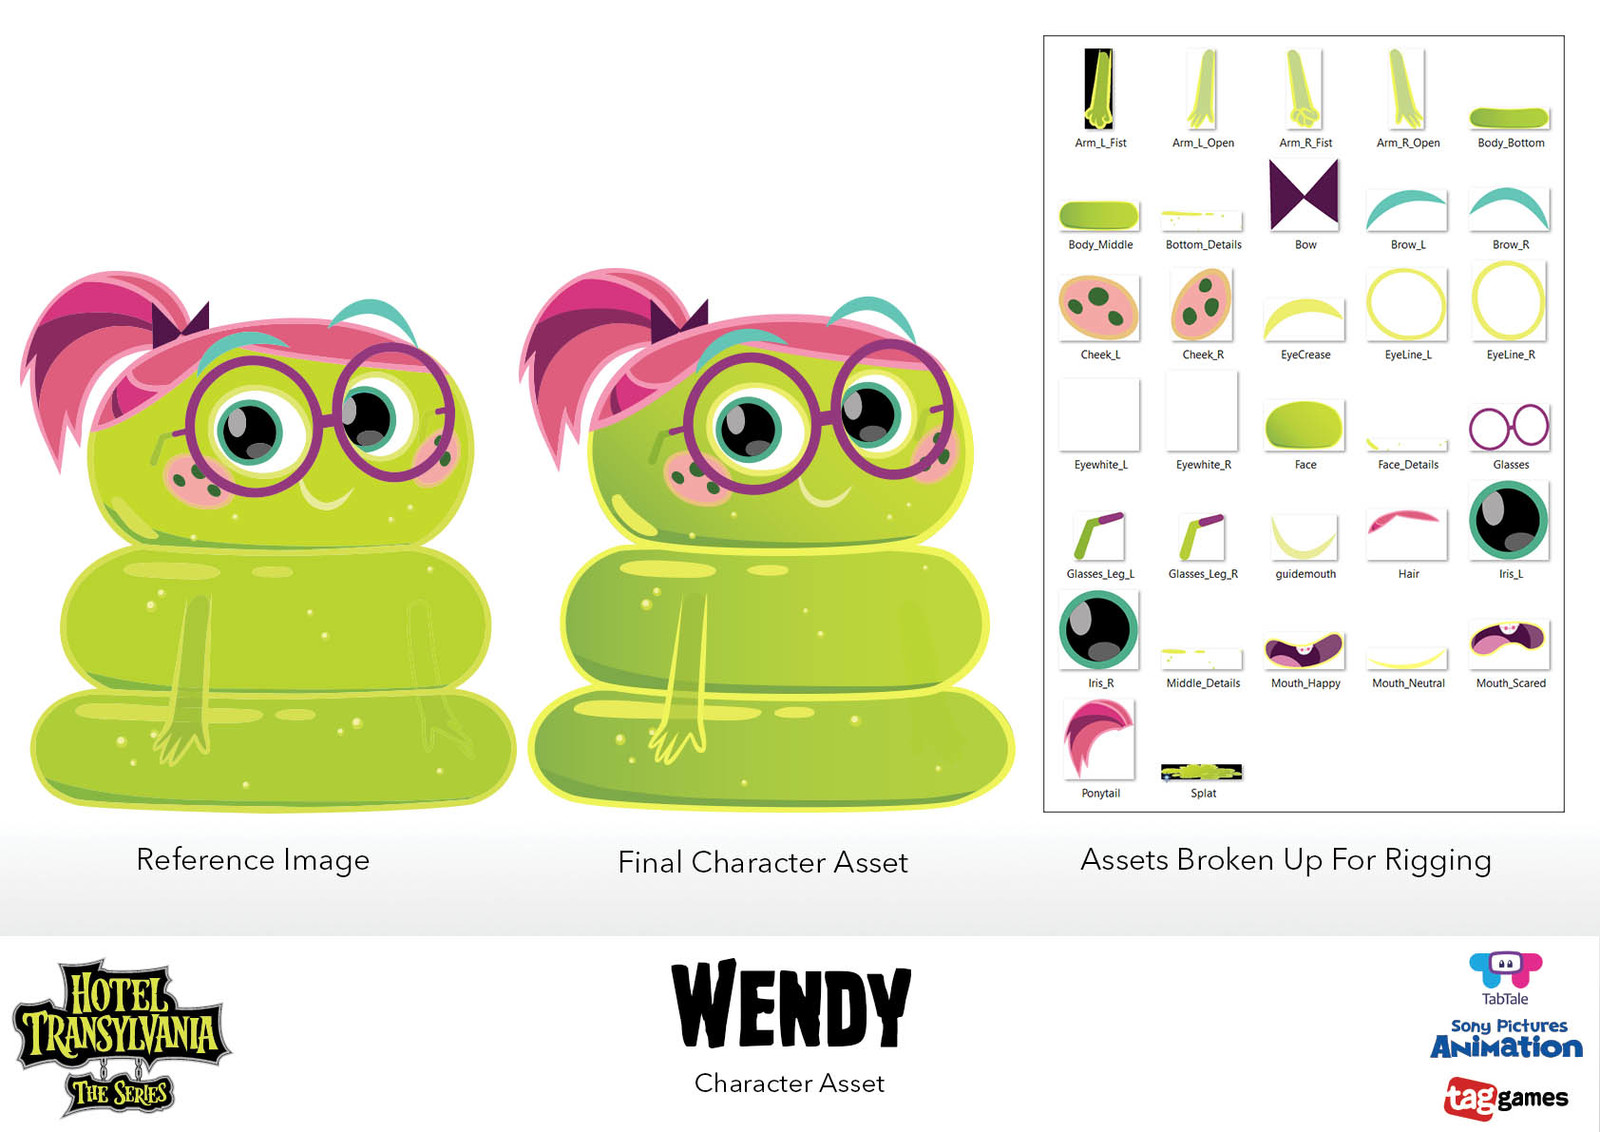 Character Assets - Wendy